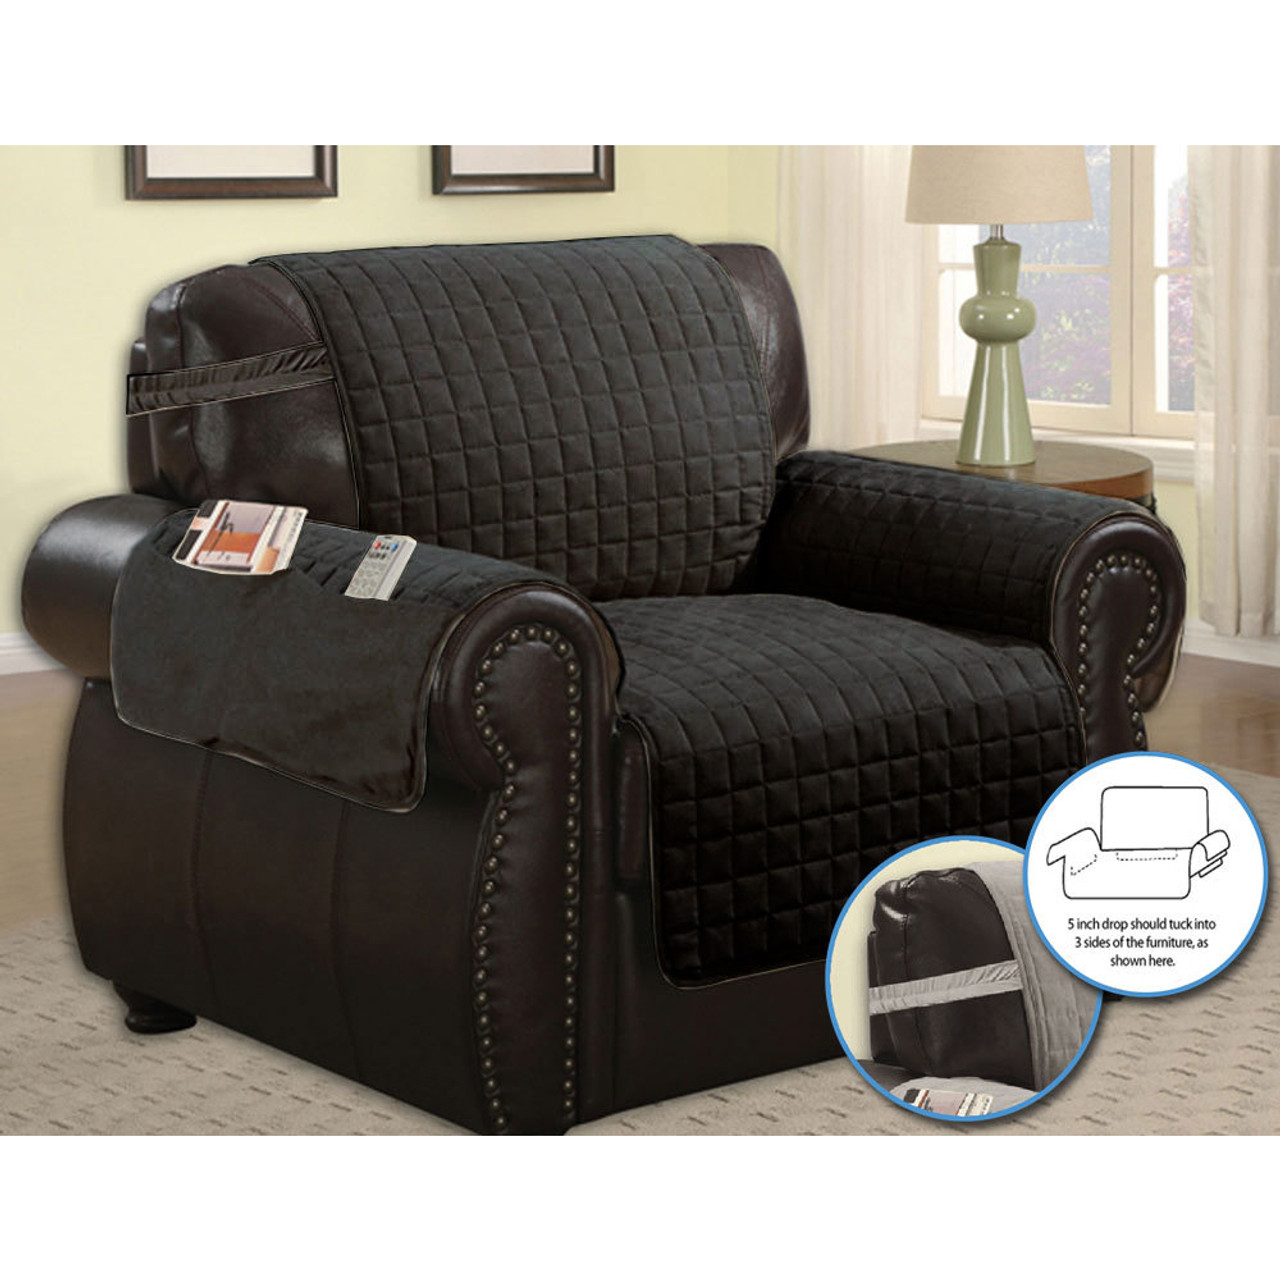 Quilted Microfiber Pet Dog Couch Furniture Protector With Side Pocket,  Tucks U0026 Strap Main